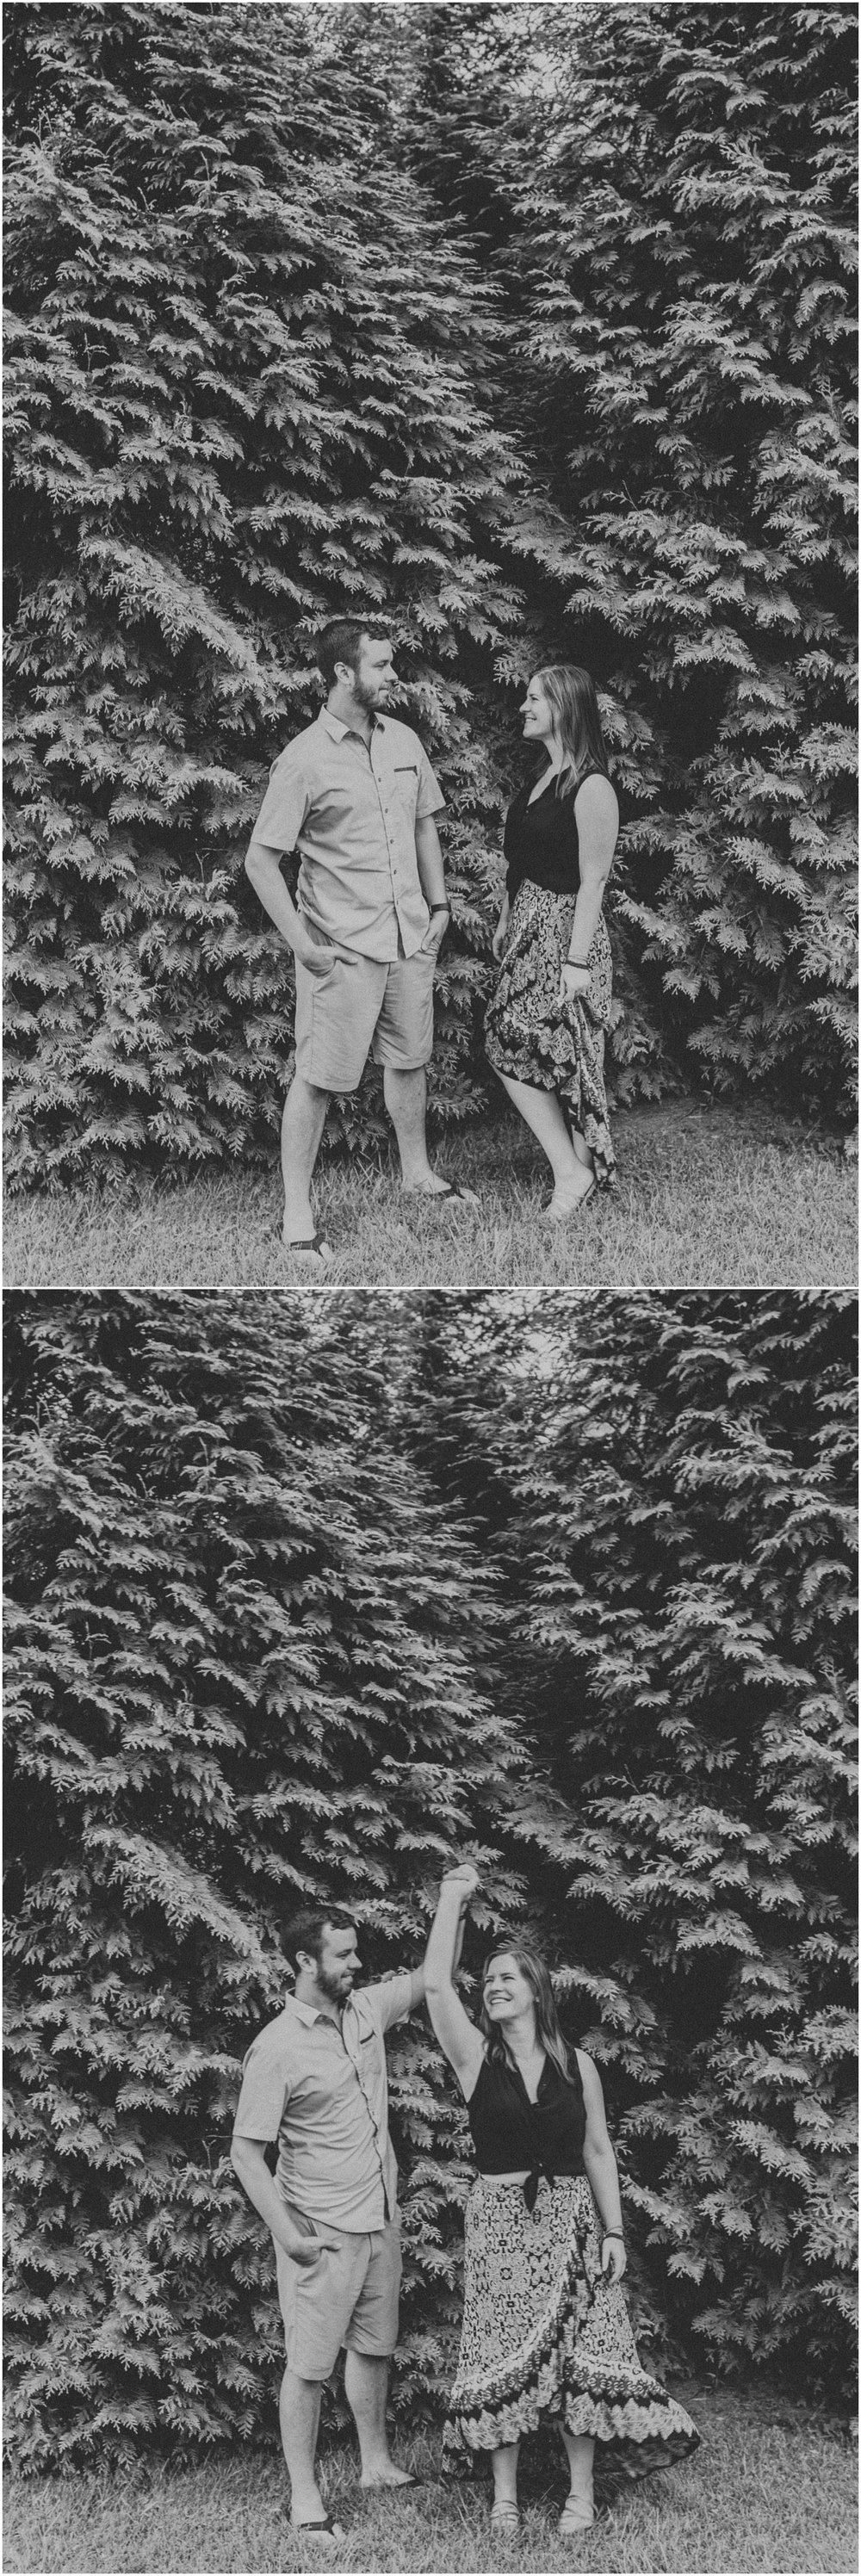 lifestyle-anniversary-engagement-photo session-rv-camping-road trip-vintage trailer-camping-outdoor photos_0263.jpg